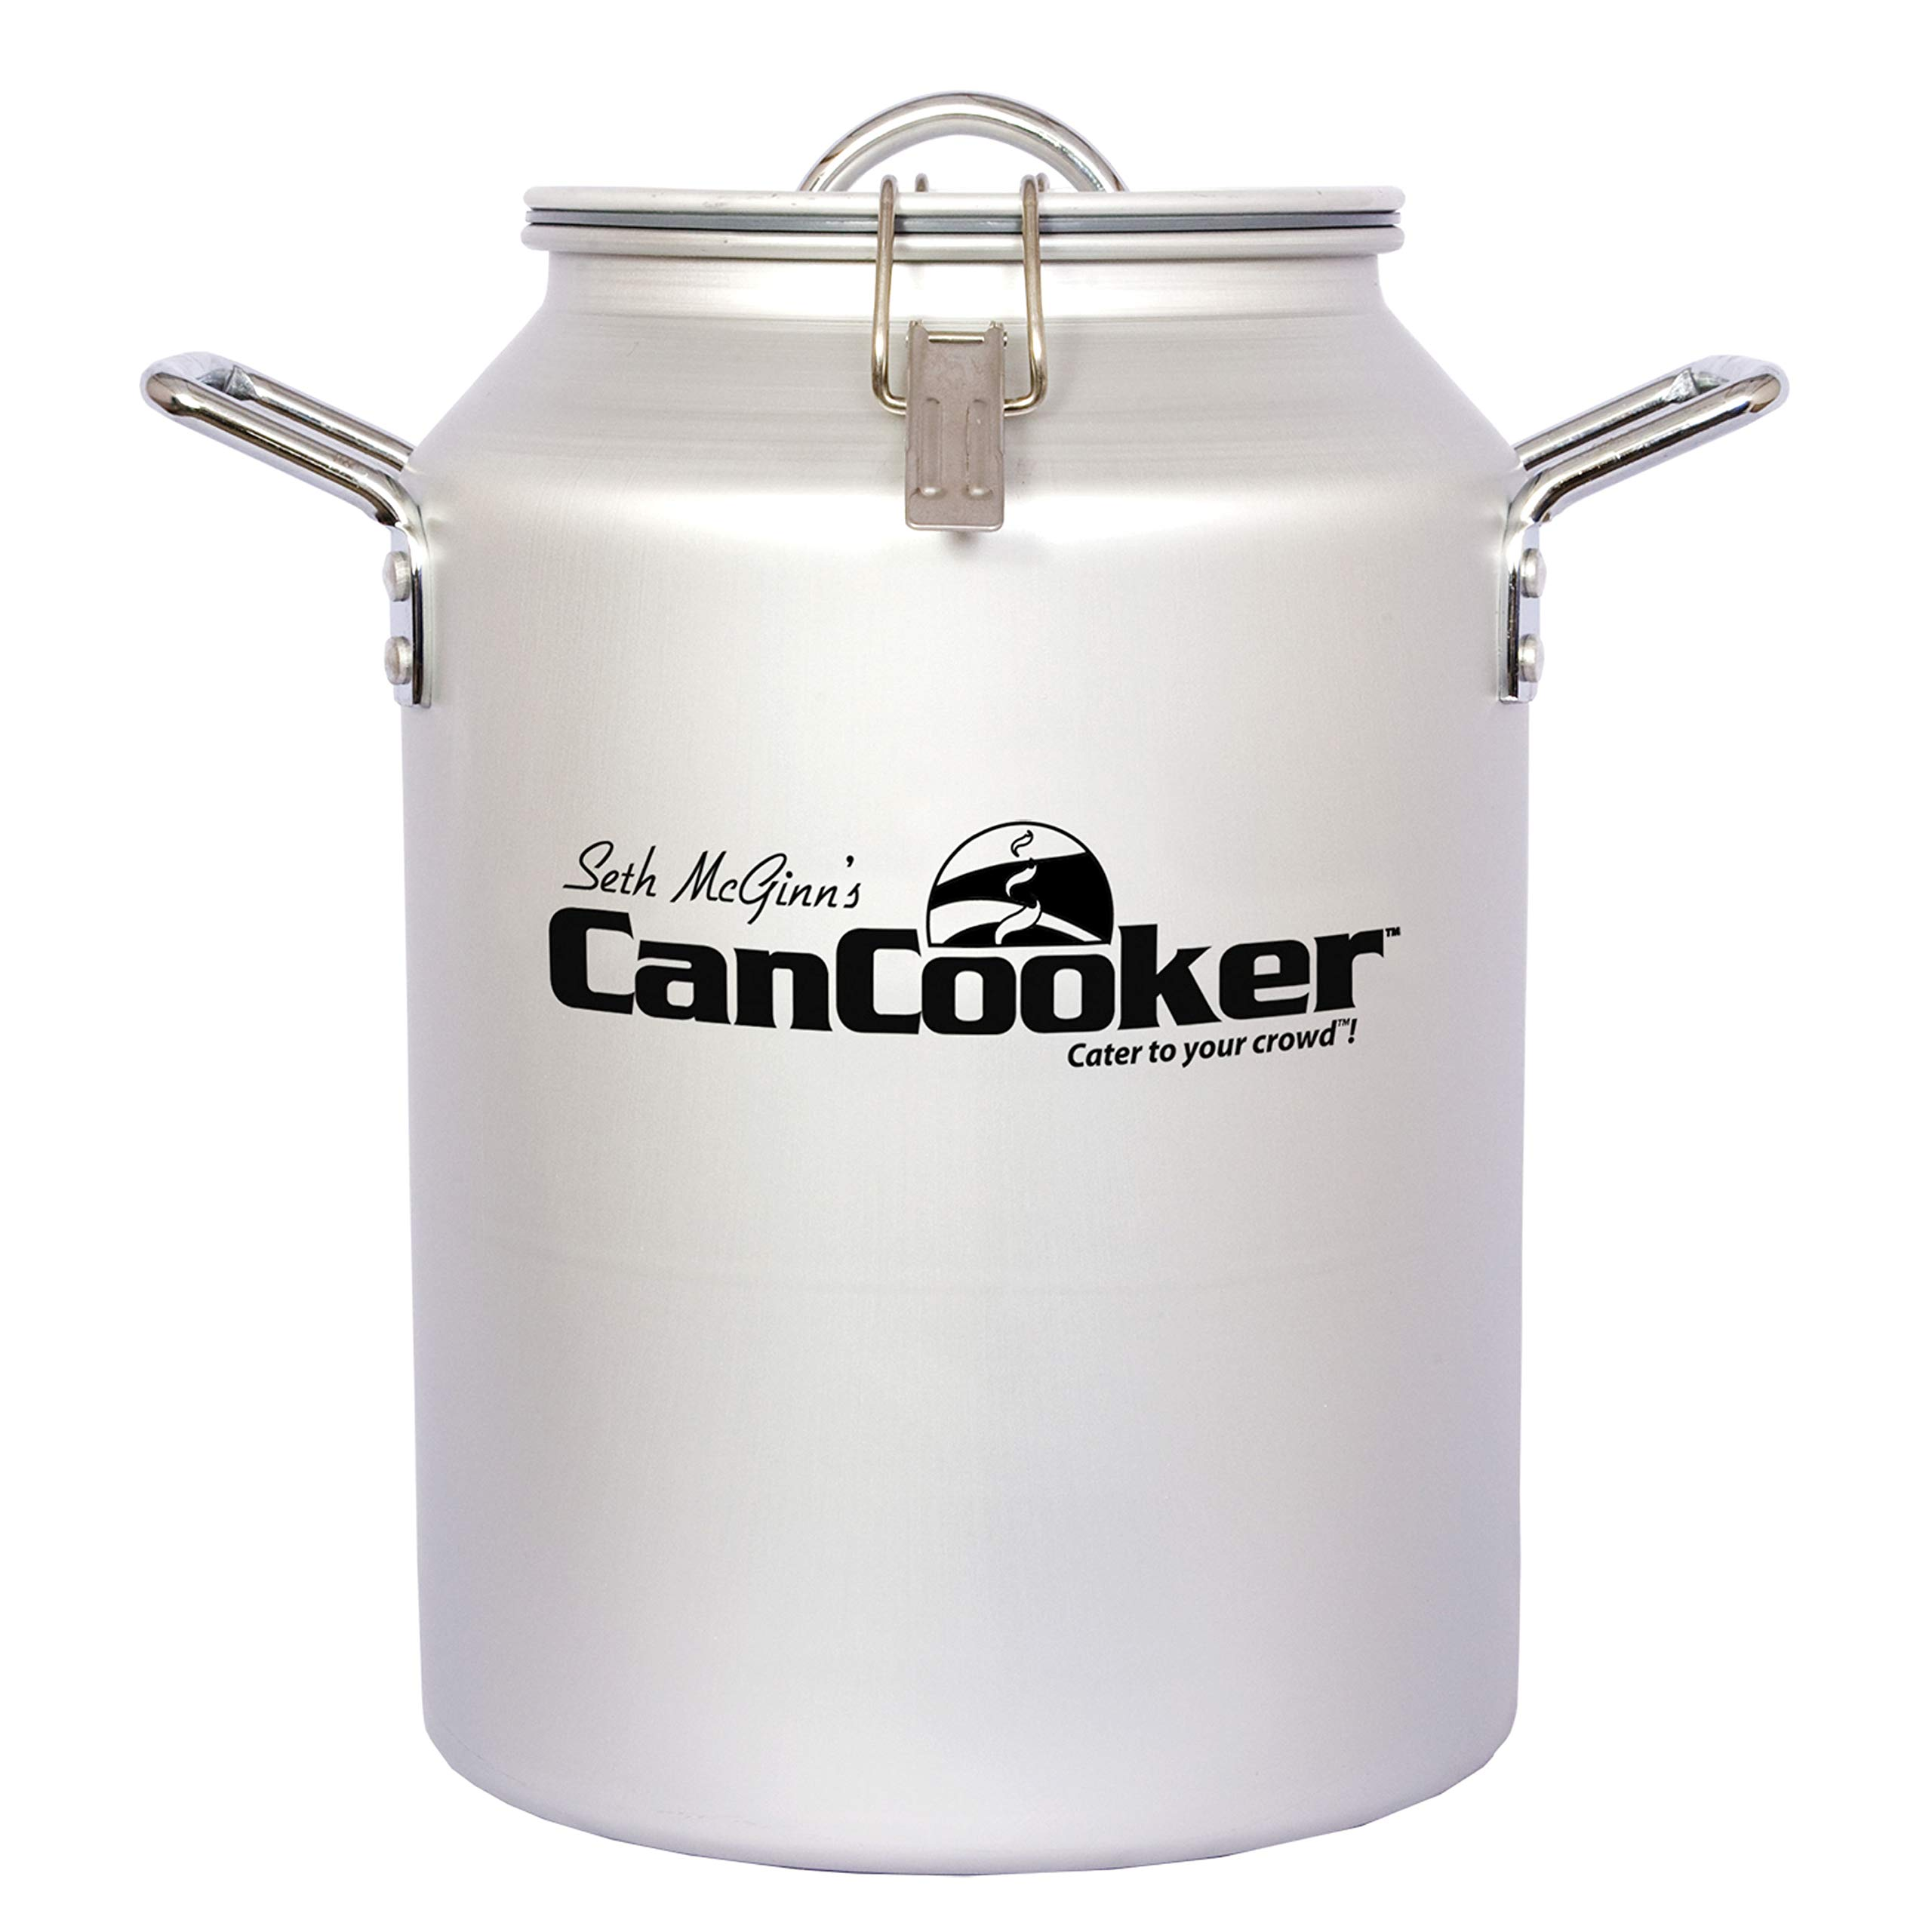 CanCooker Original 4 Gallon Edition , Convection Steam Cooker Feeds up to 20 by CanCooker